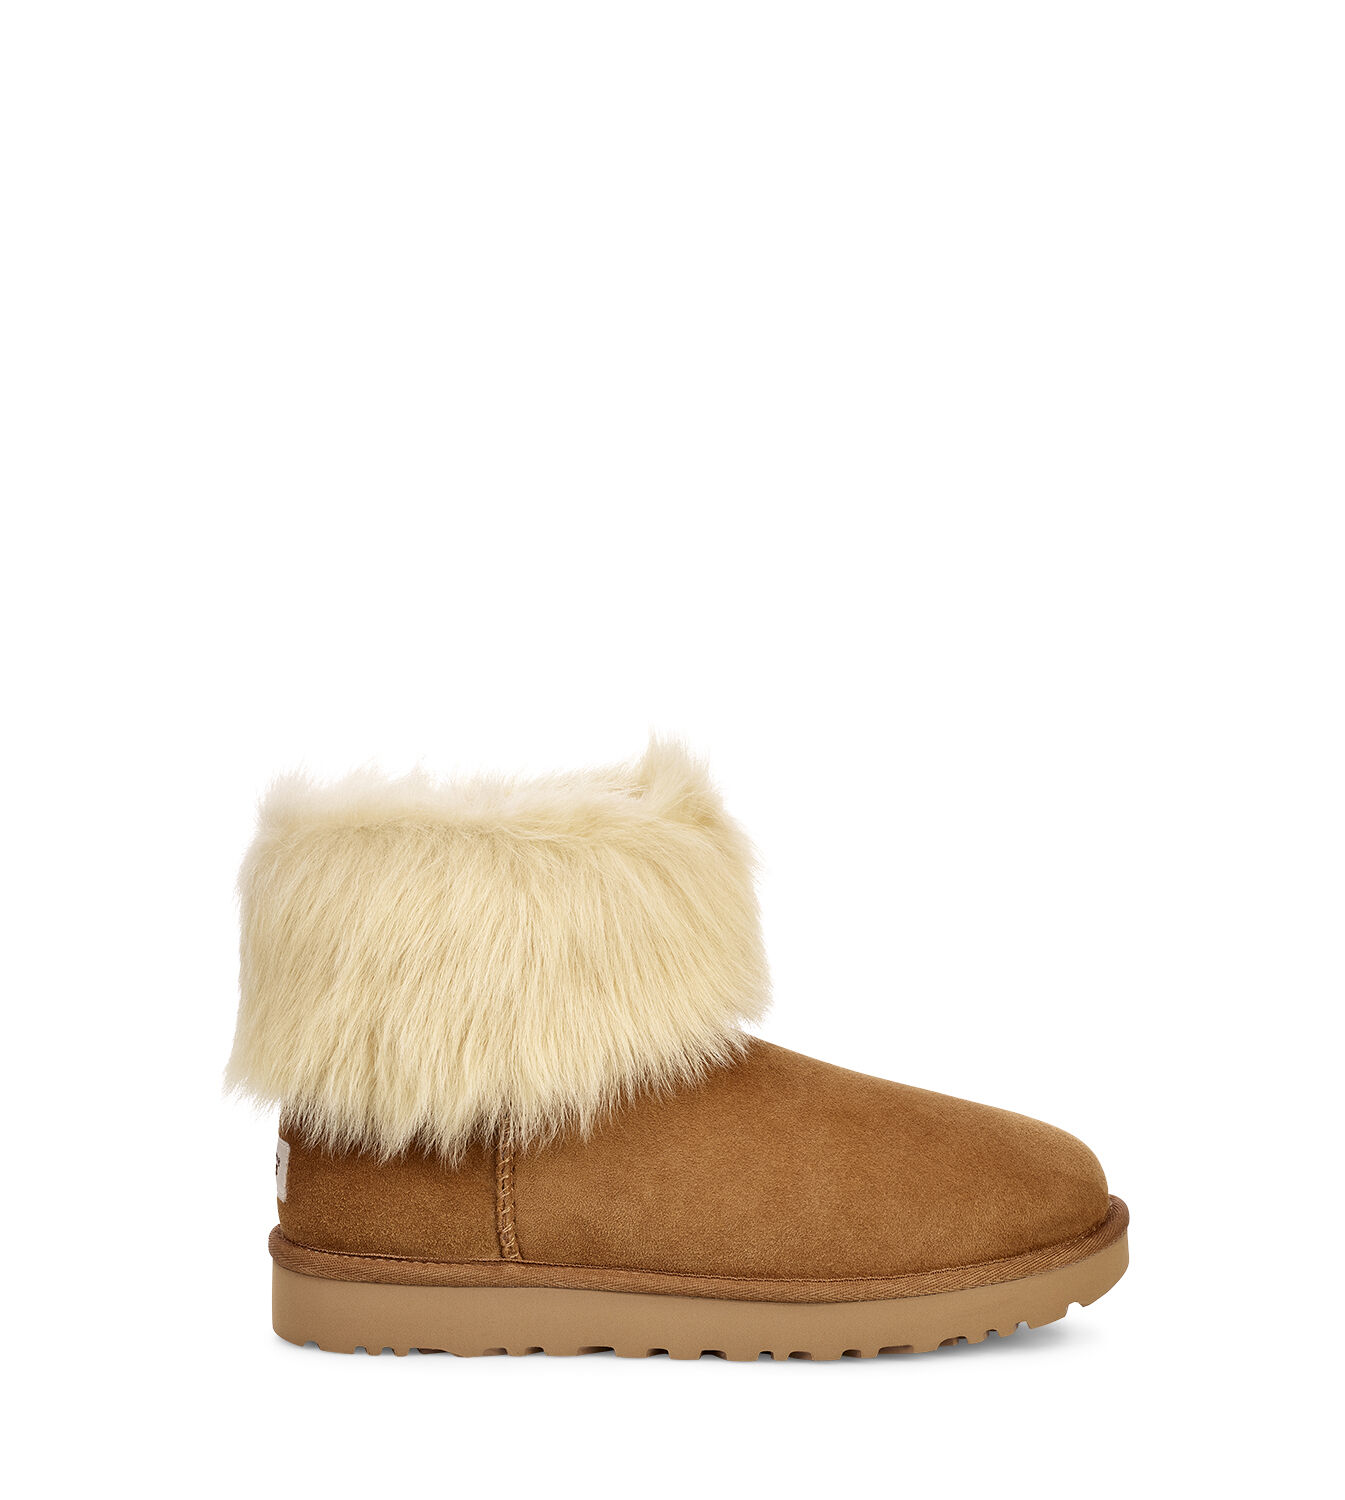 ZOIWMI RIEKER Slipper in beige